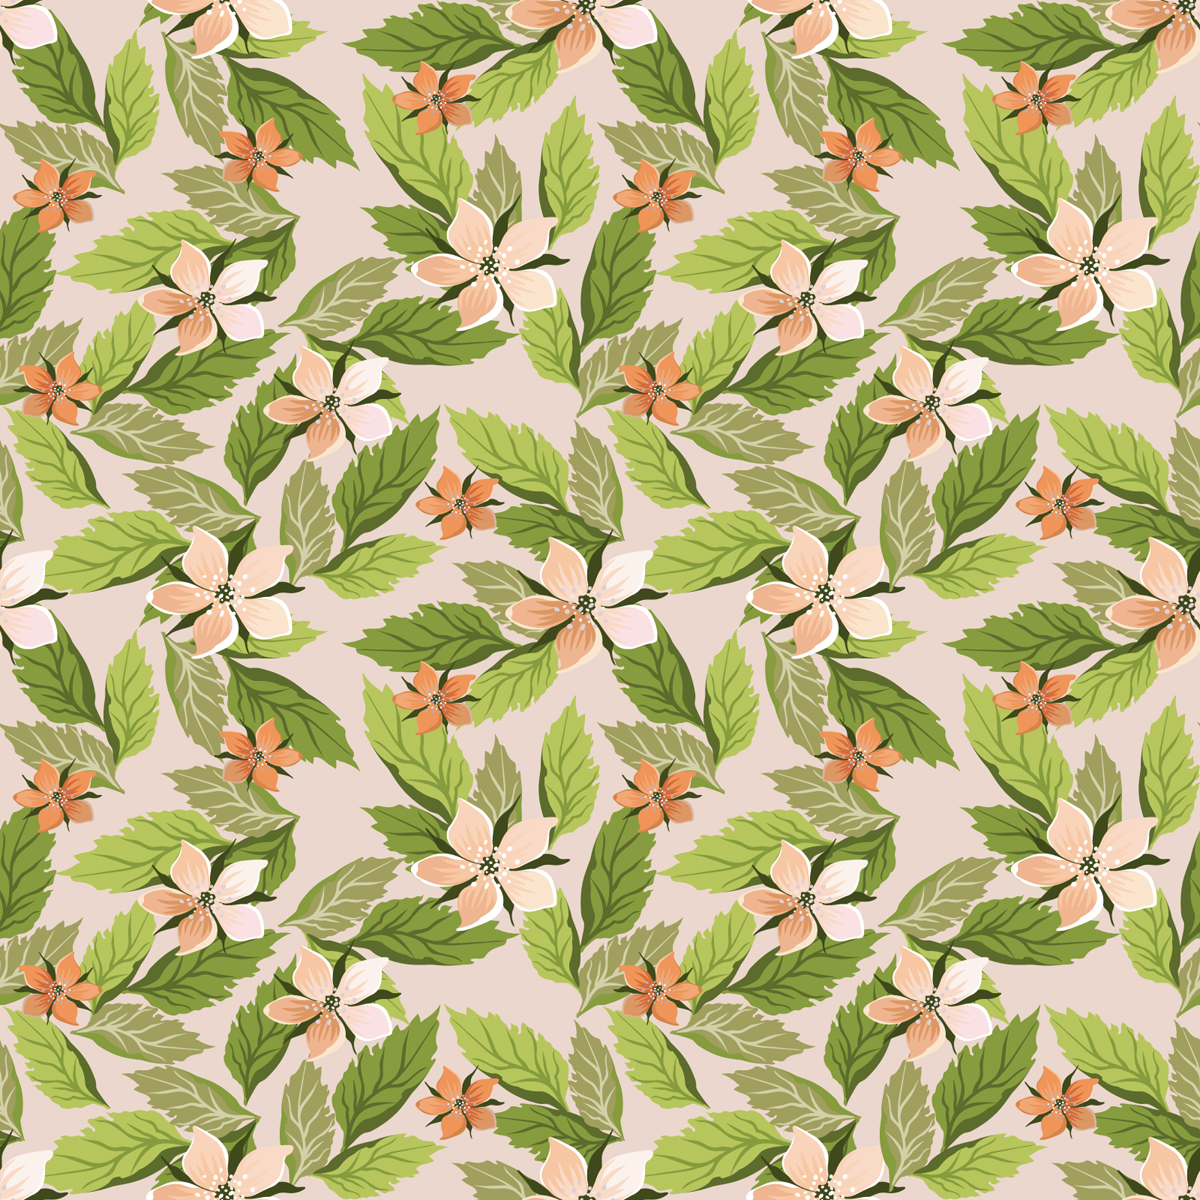 Seamless Floral with Leaves PPT Backgrounds